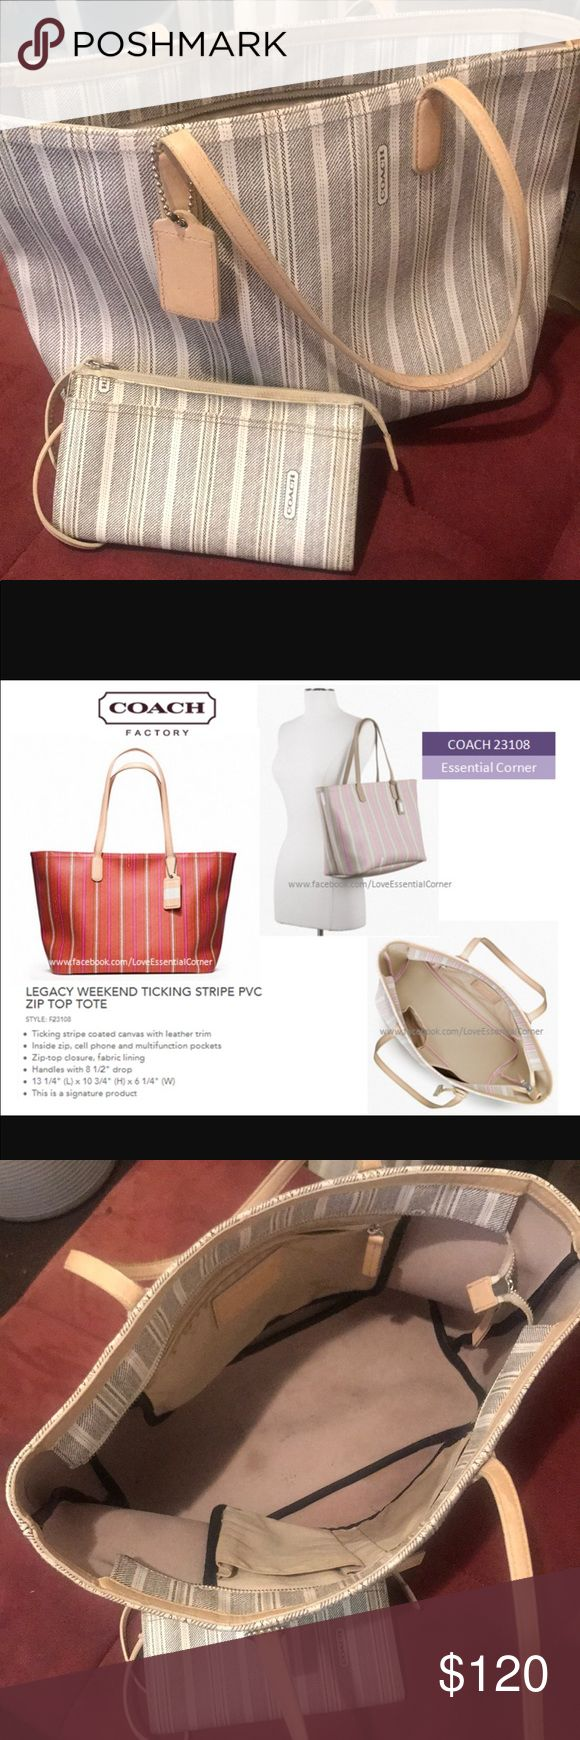 COACH Legacy Weekend Tote COACH Legacy Weekend Ticking Stripe, used condition, shows signs of wear, still in good condition. Lovely everyday use purse.I am throwing the wristlet with the deal. I purchased at Coach store . Coach Bags Totes